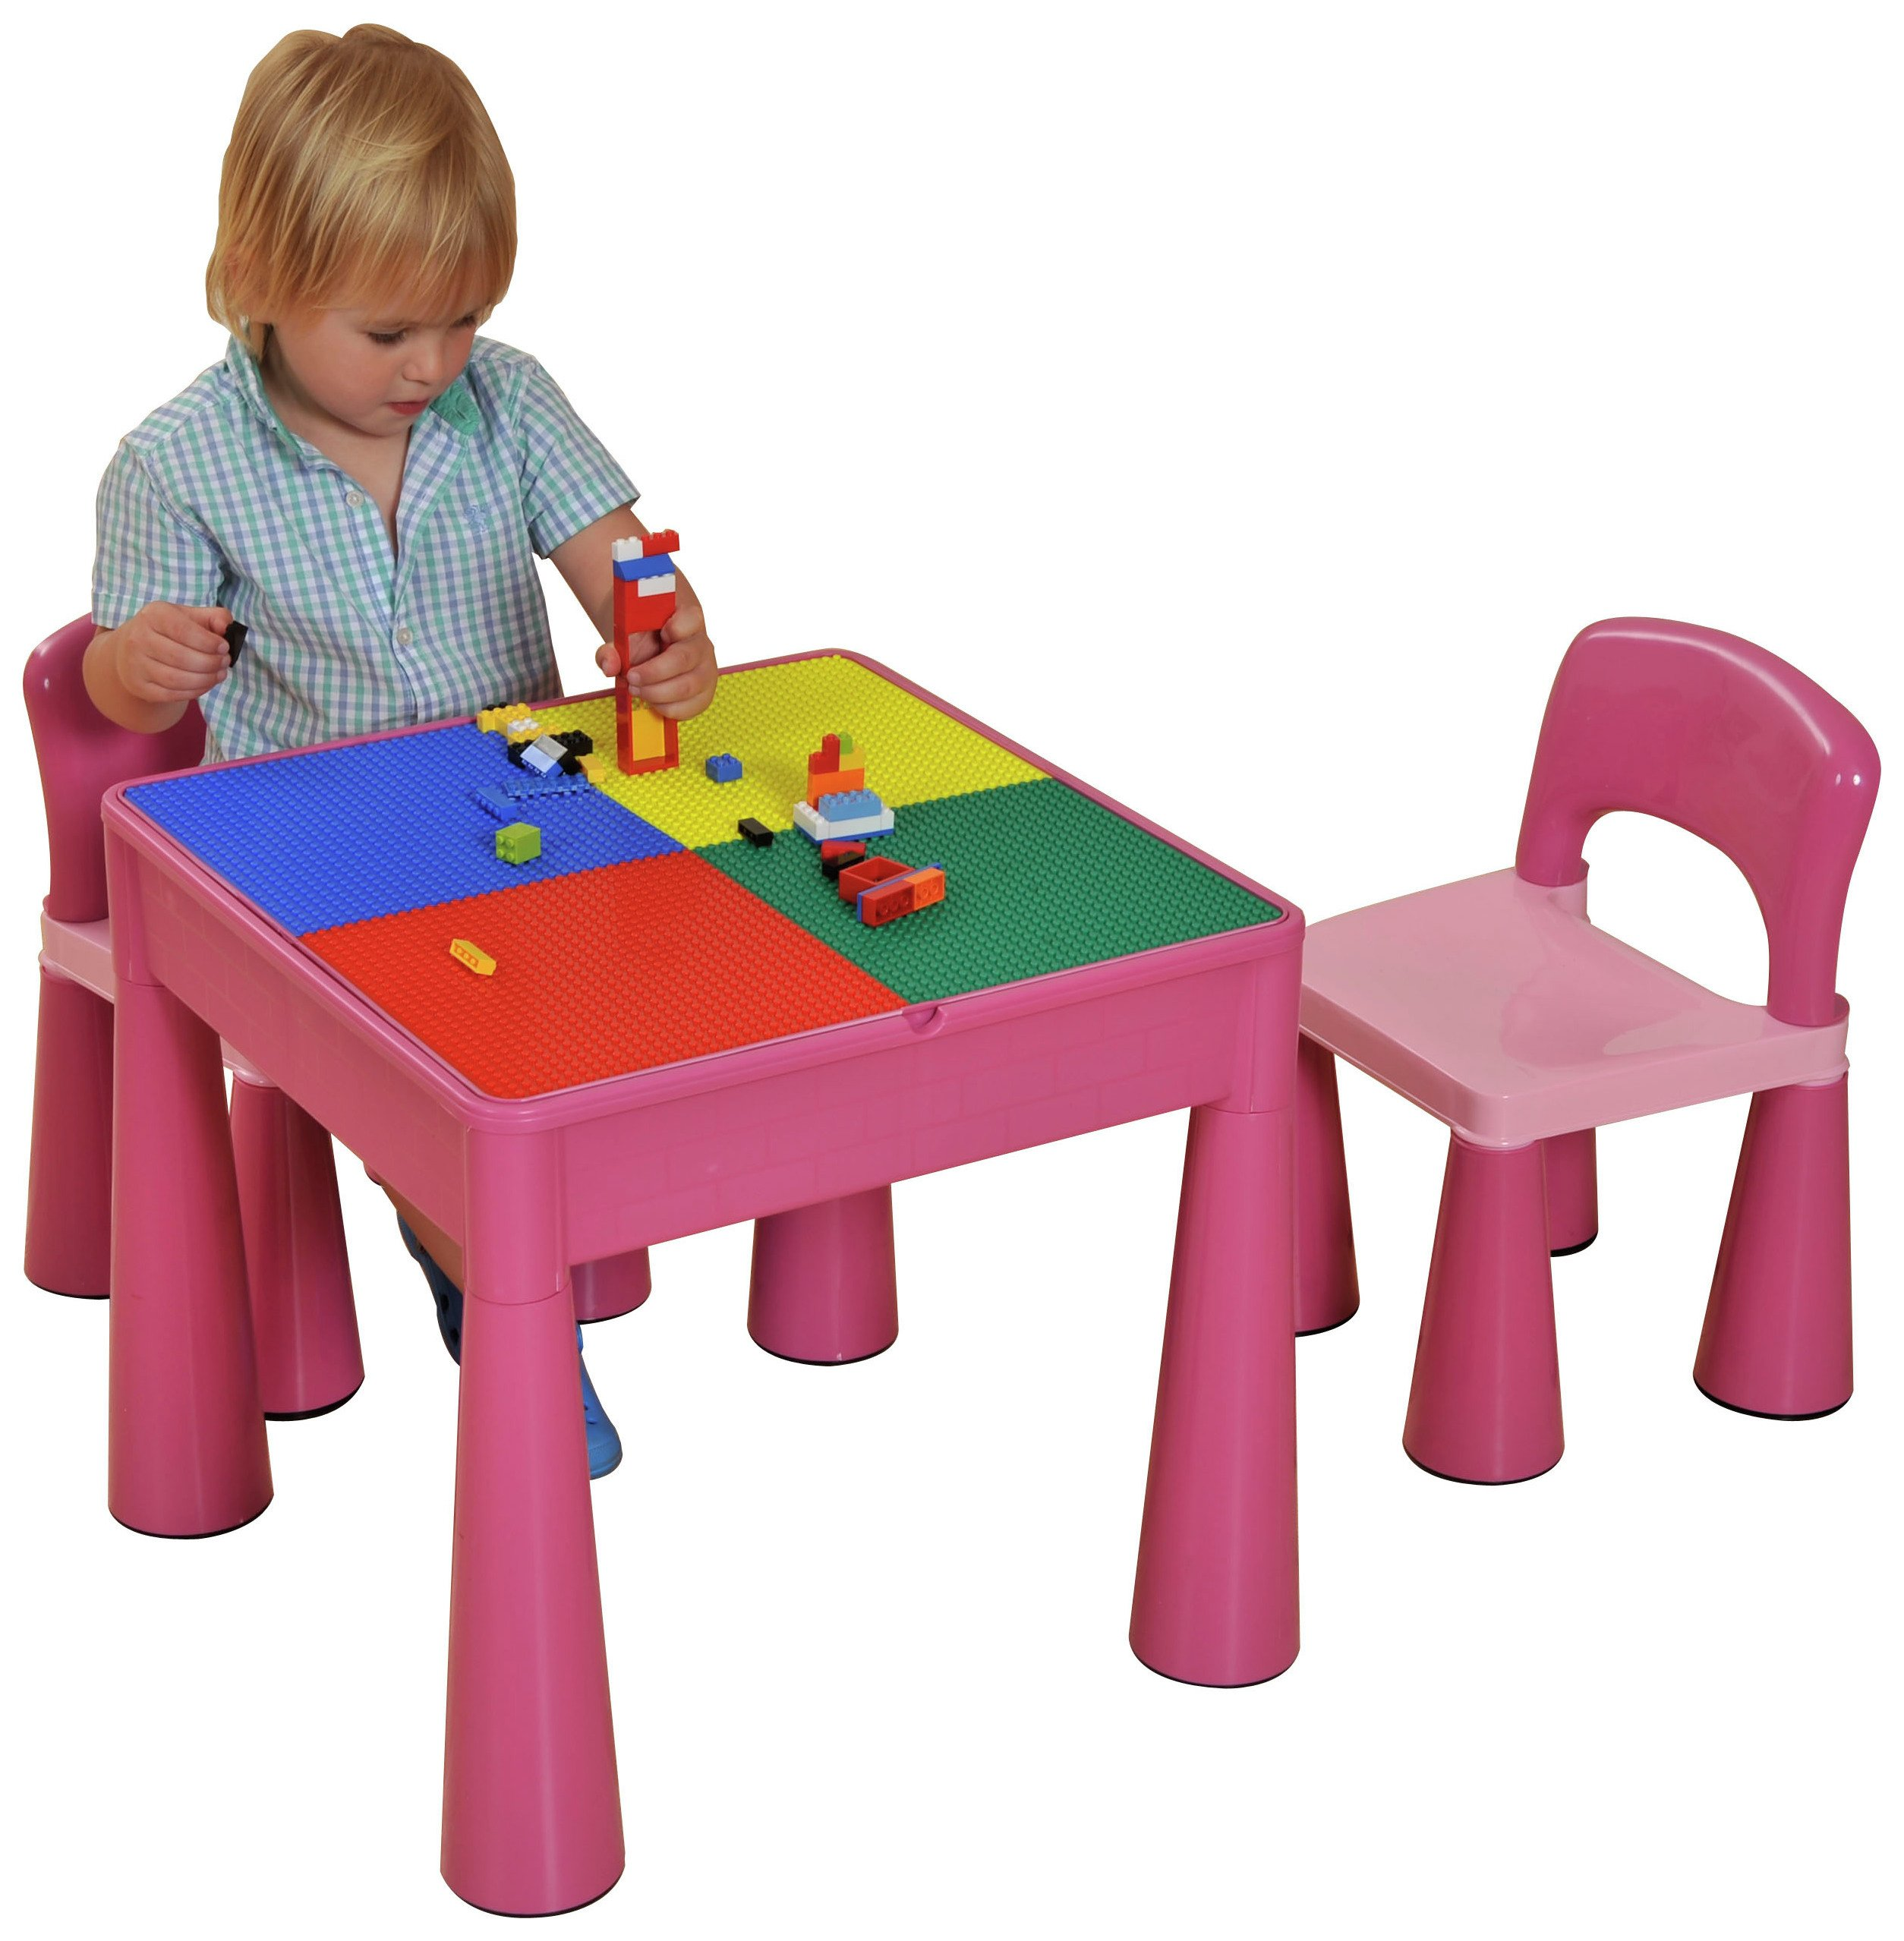 5 in 1 Table and Chairs Writing/Lego Top/Sand/Water/Storage.